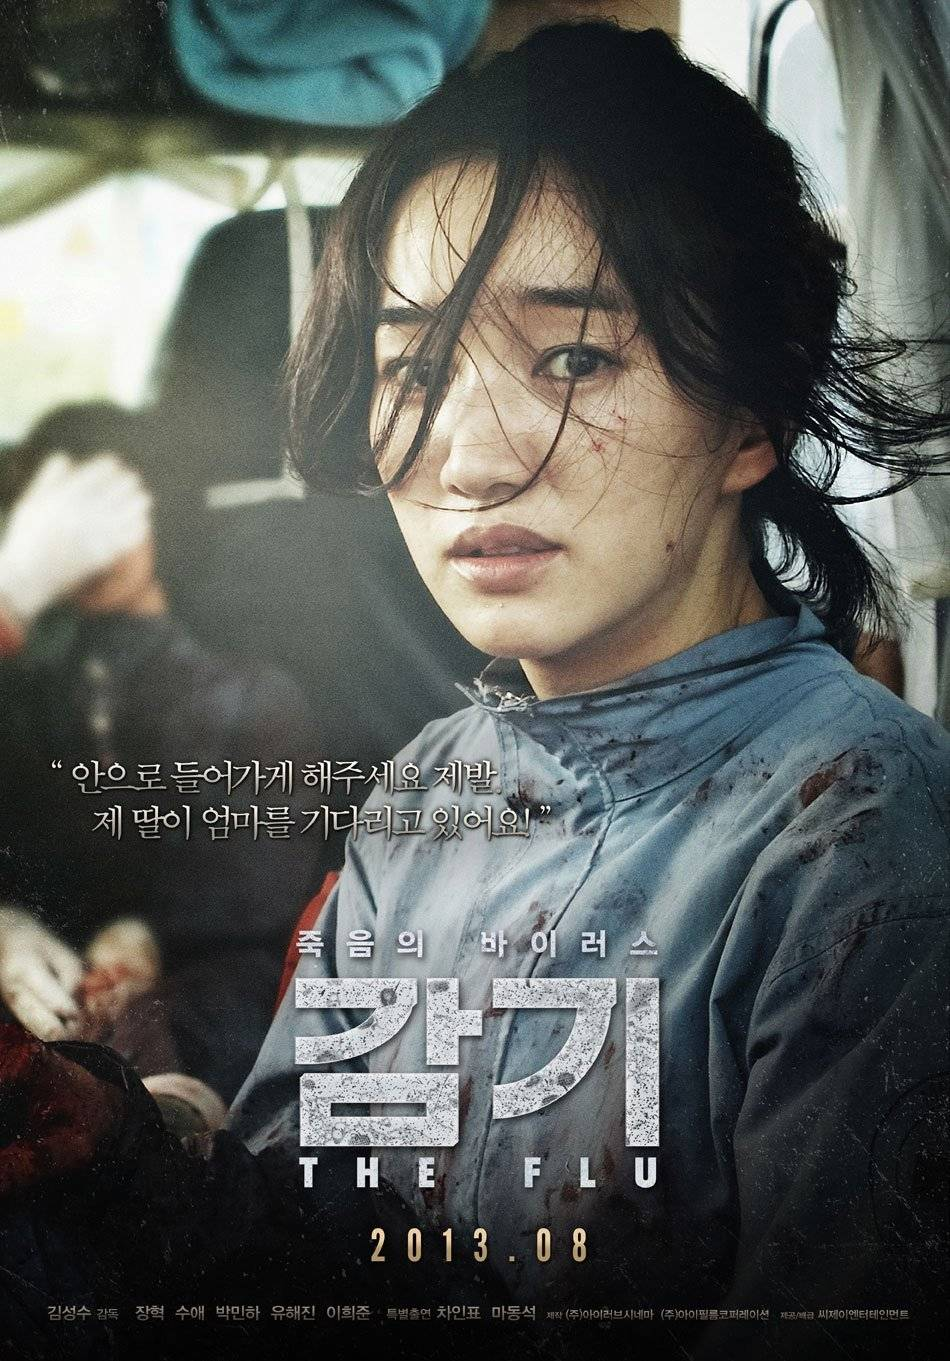 The Flu (감기) - Movie - Picture Gallery @ HanCinema :: The